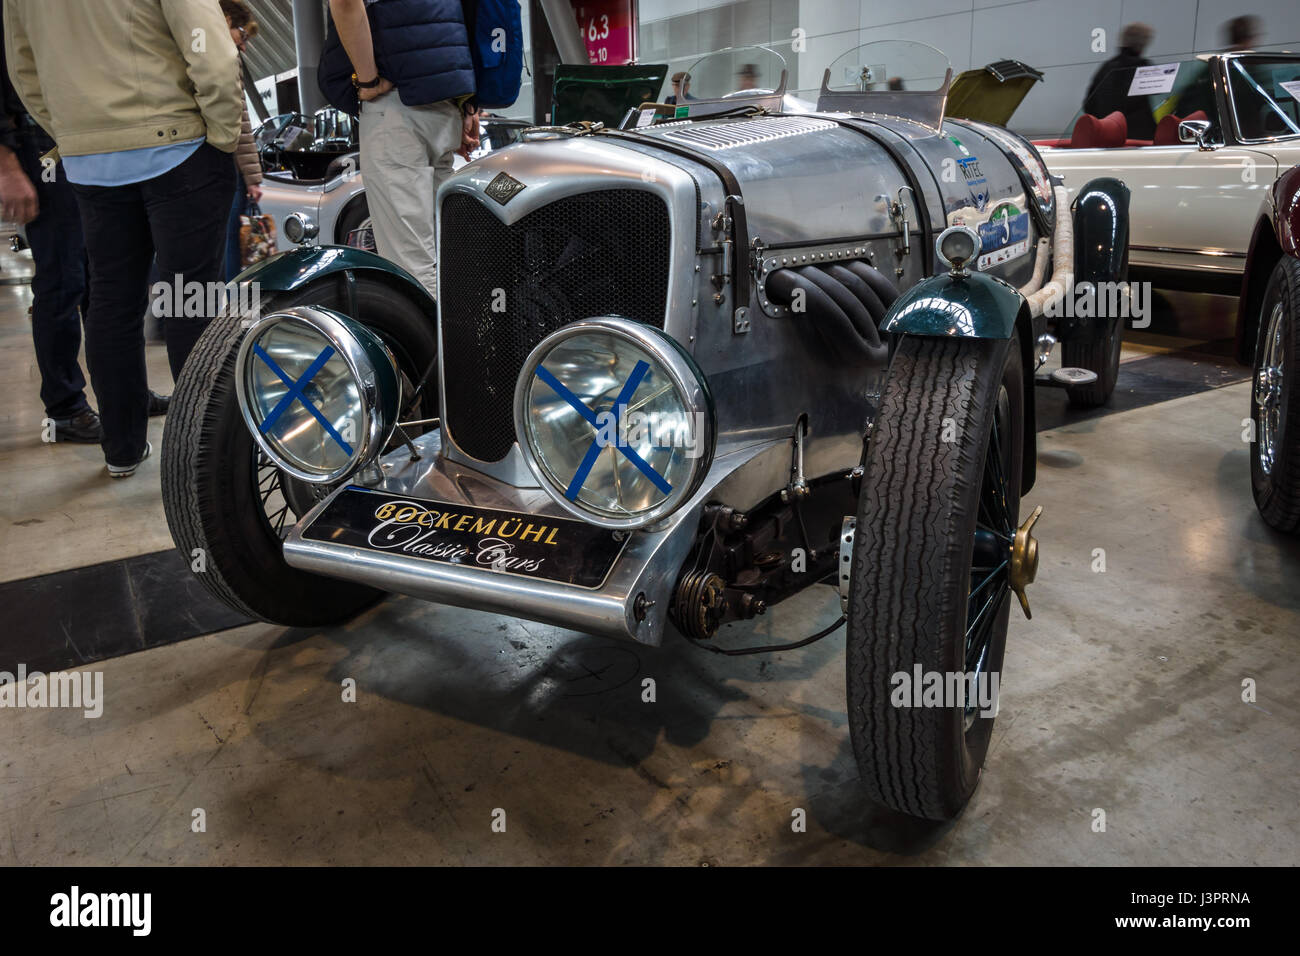 STUTTGART, GERMANY - MARCH 03, 2017: Midsize sports saloon Riley 12/4 Special, 1934. Europe's greatest classic car Stock Photo